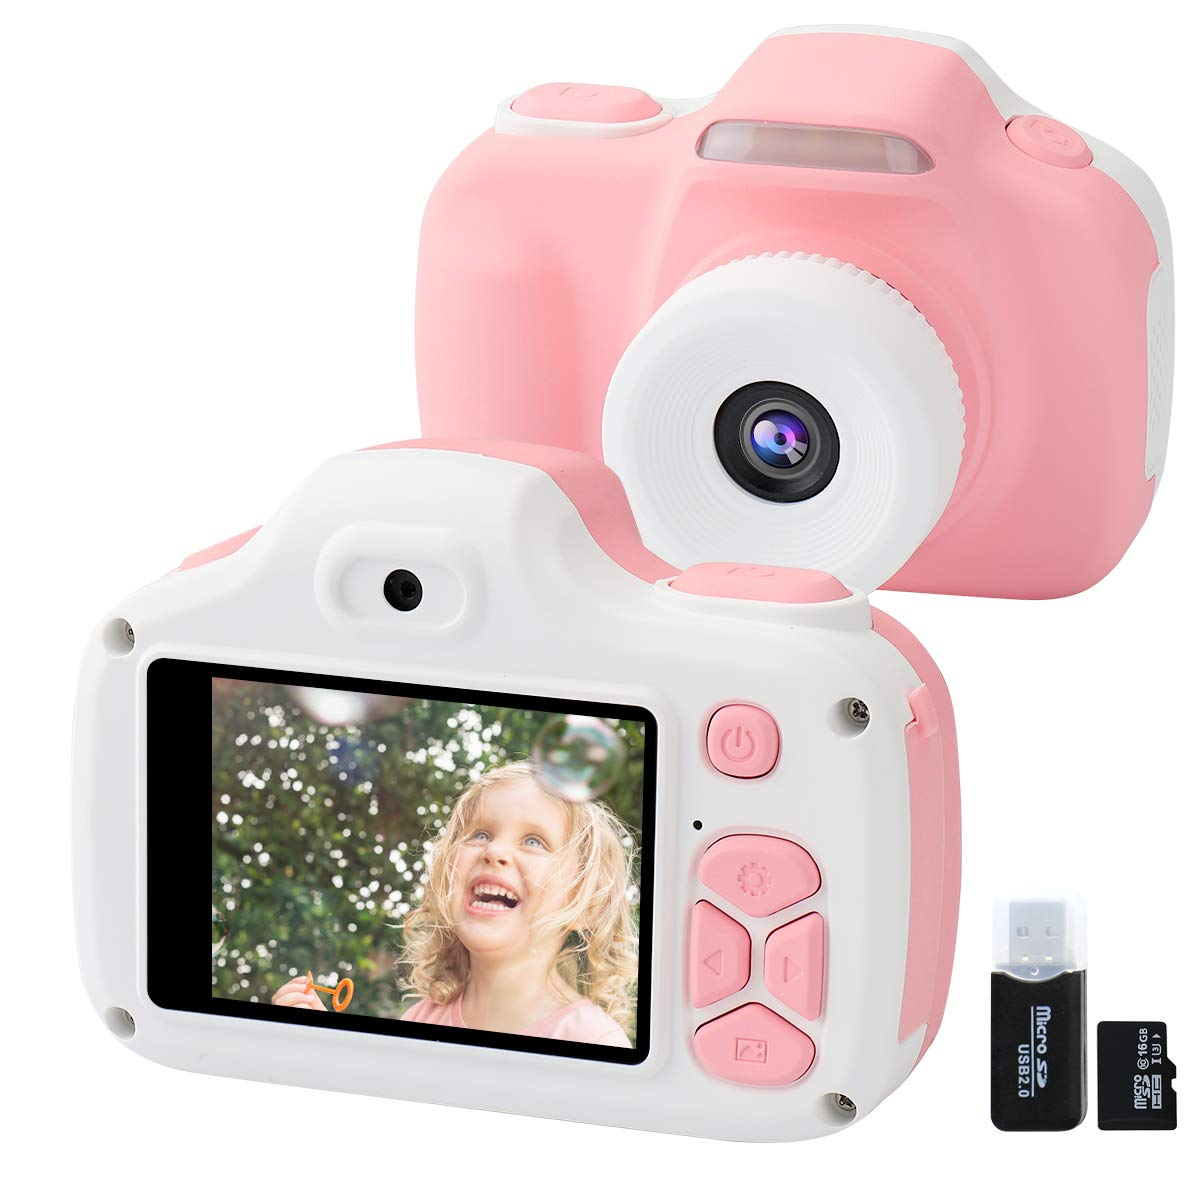 Joytrip Kids Camera for Girls Gifts, 12MP Digital Selfie 1080P HD Video Camcorder for Children 3-12 Years Old Shockproof Mini Learning Toy Cameras with Flash (16GB Memory Card Included) (Pink)